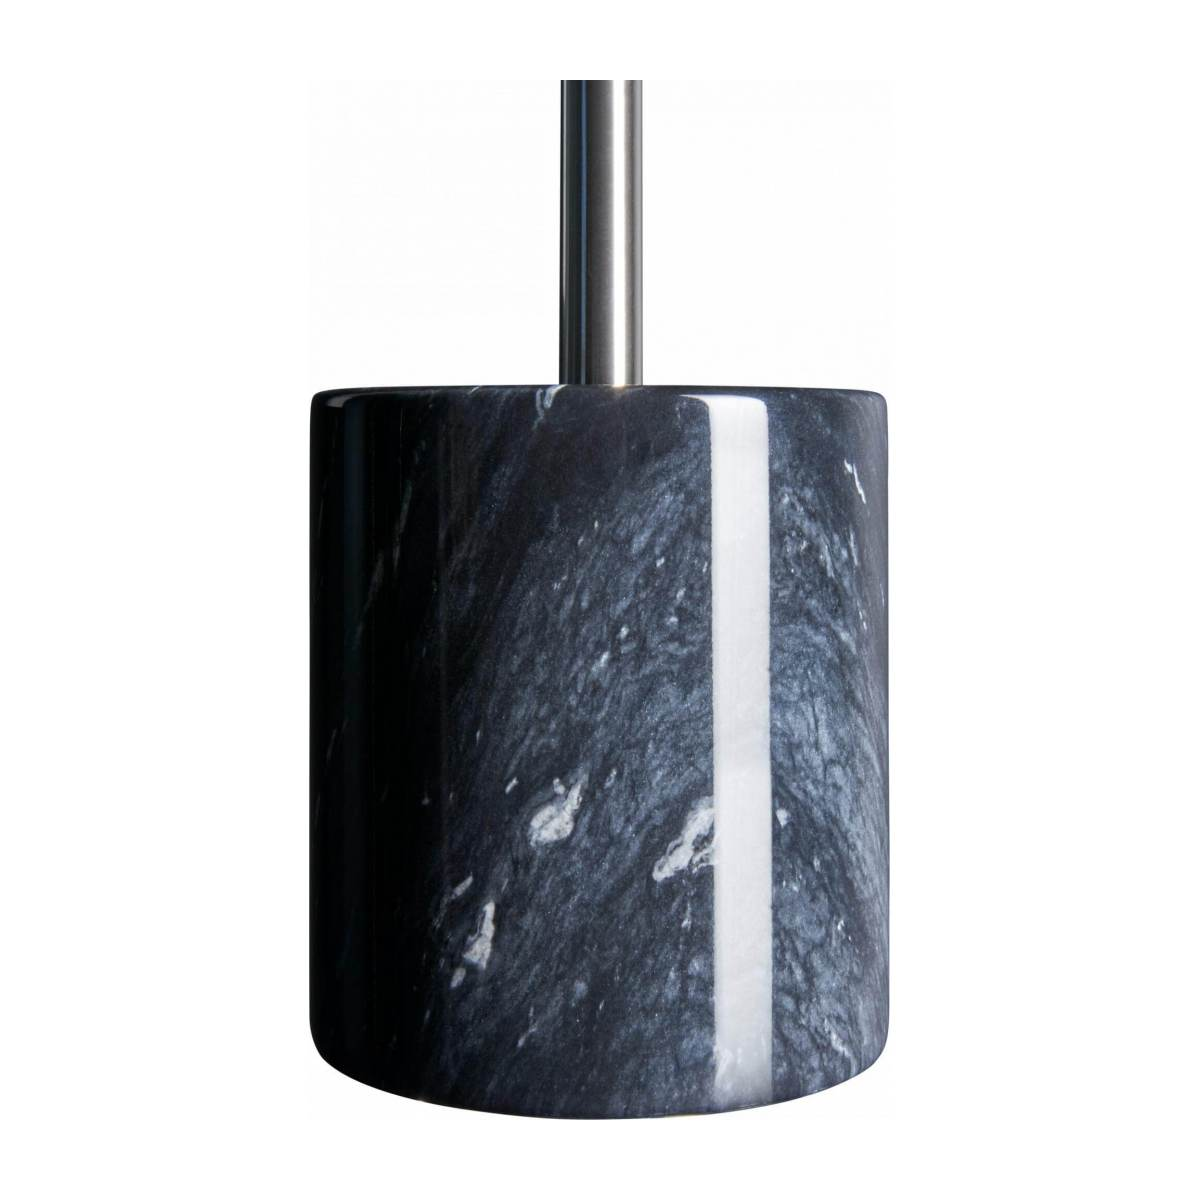 Toilet brush made of marble, black n°2